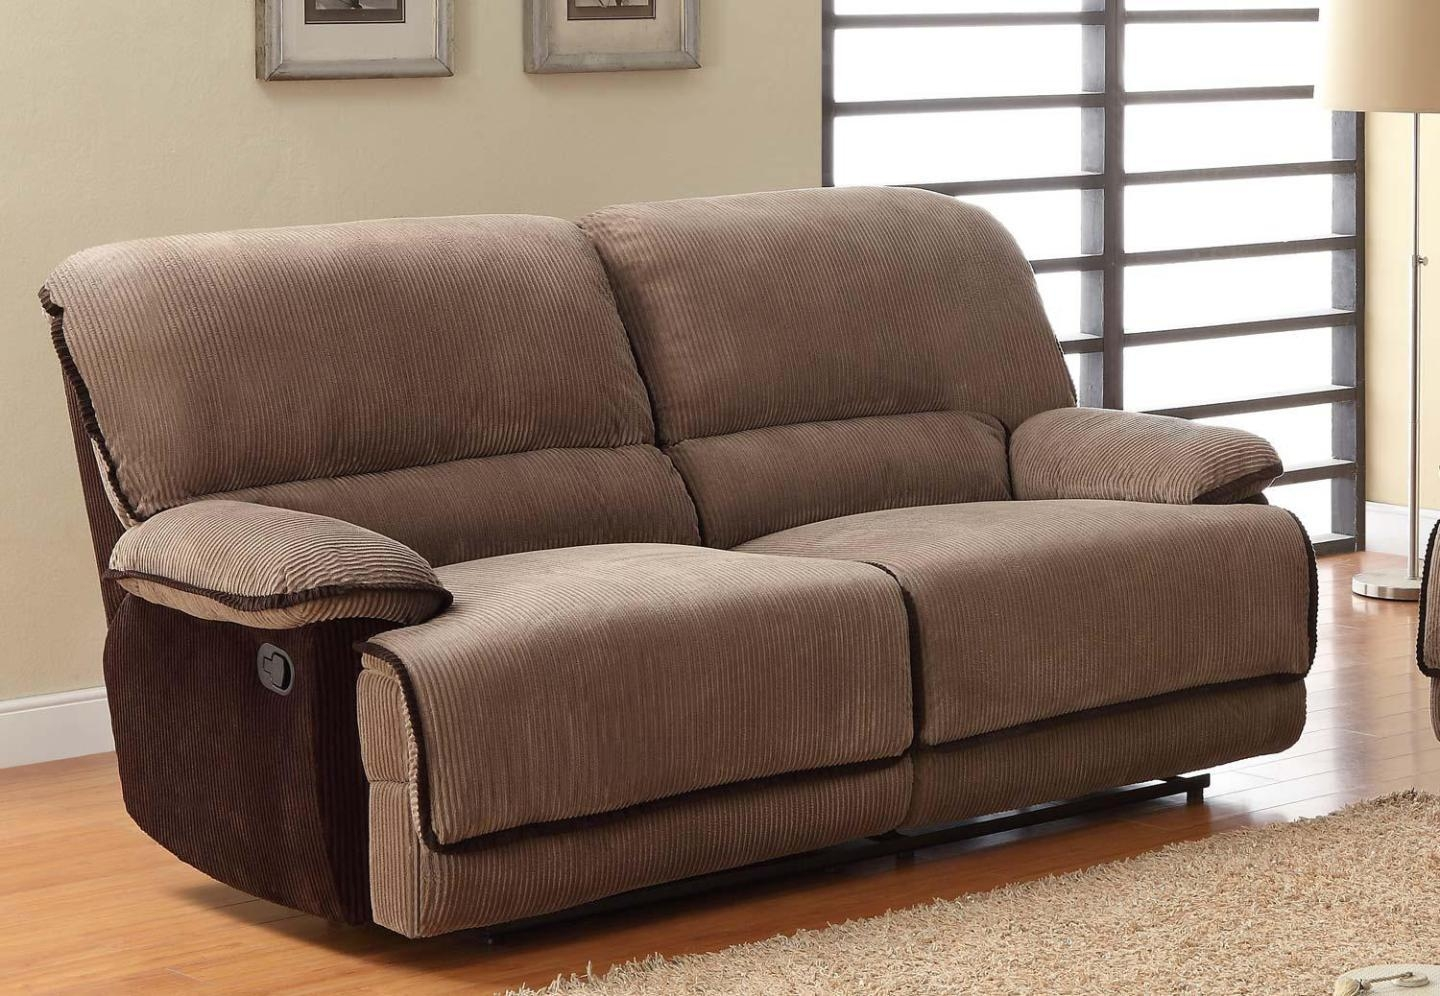 Furniture: Sofa Recliner Covers | Bed Bath Beyond Sofa Covers With Regard To Sleeper Sofa Slipcovers (Image 7 of 20)